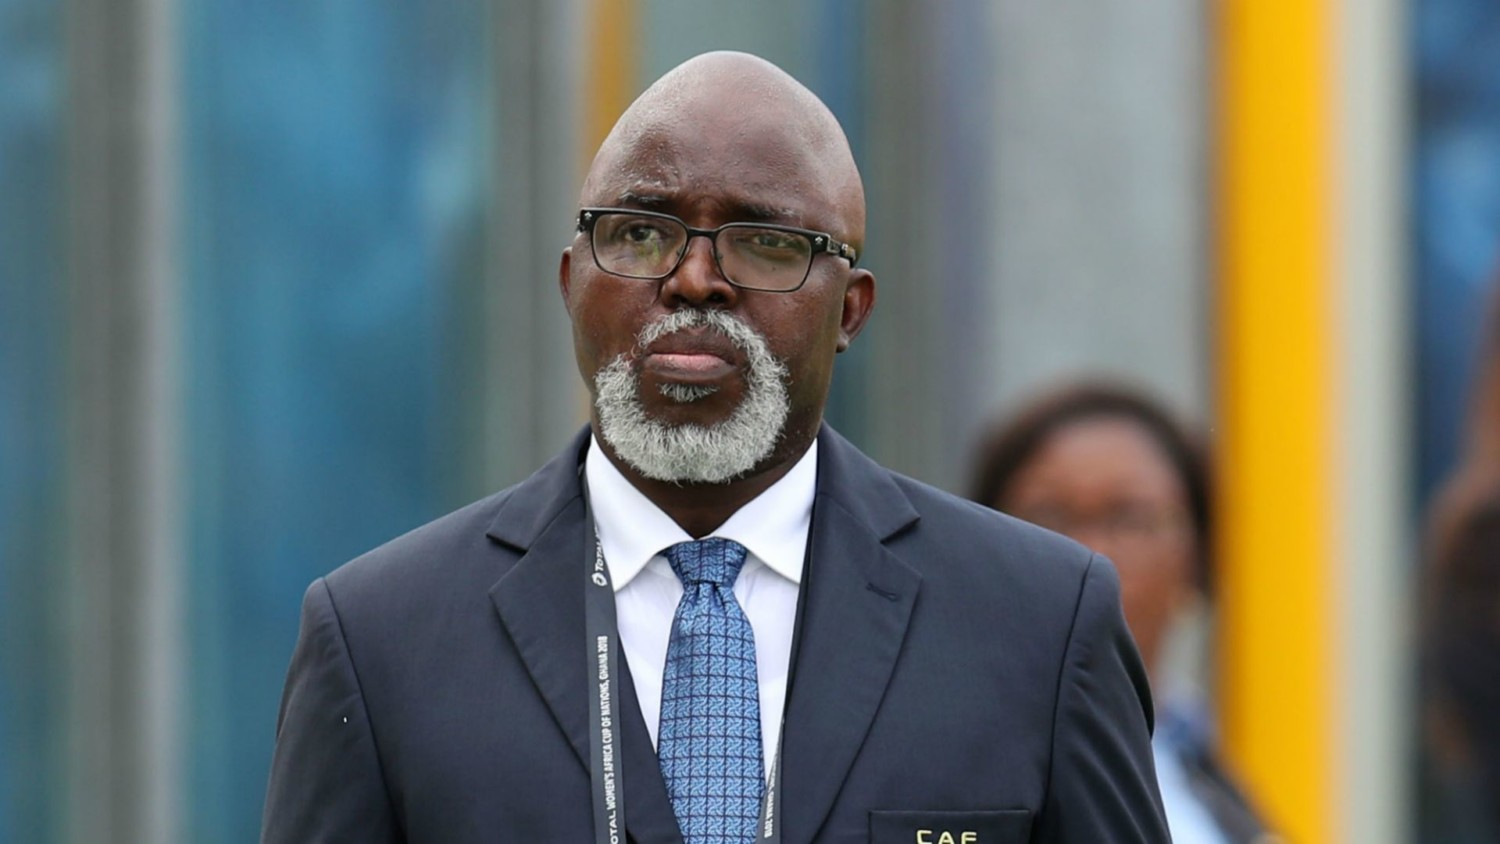 NFF boss, Pinnick refuses to rule out CAF presidency bid